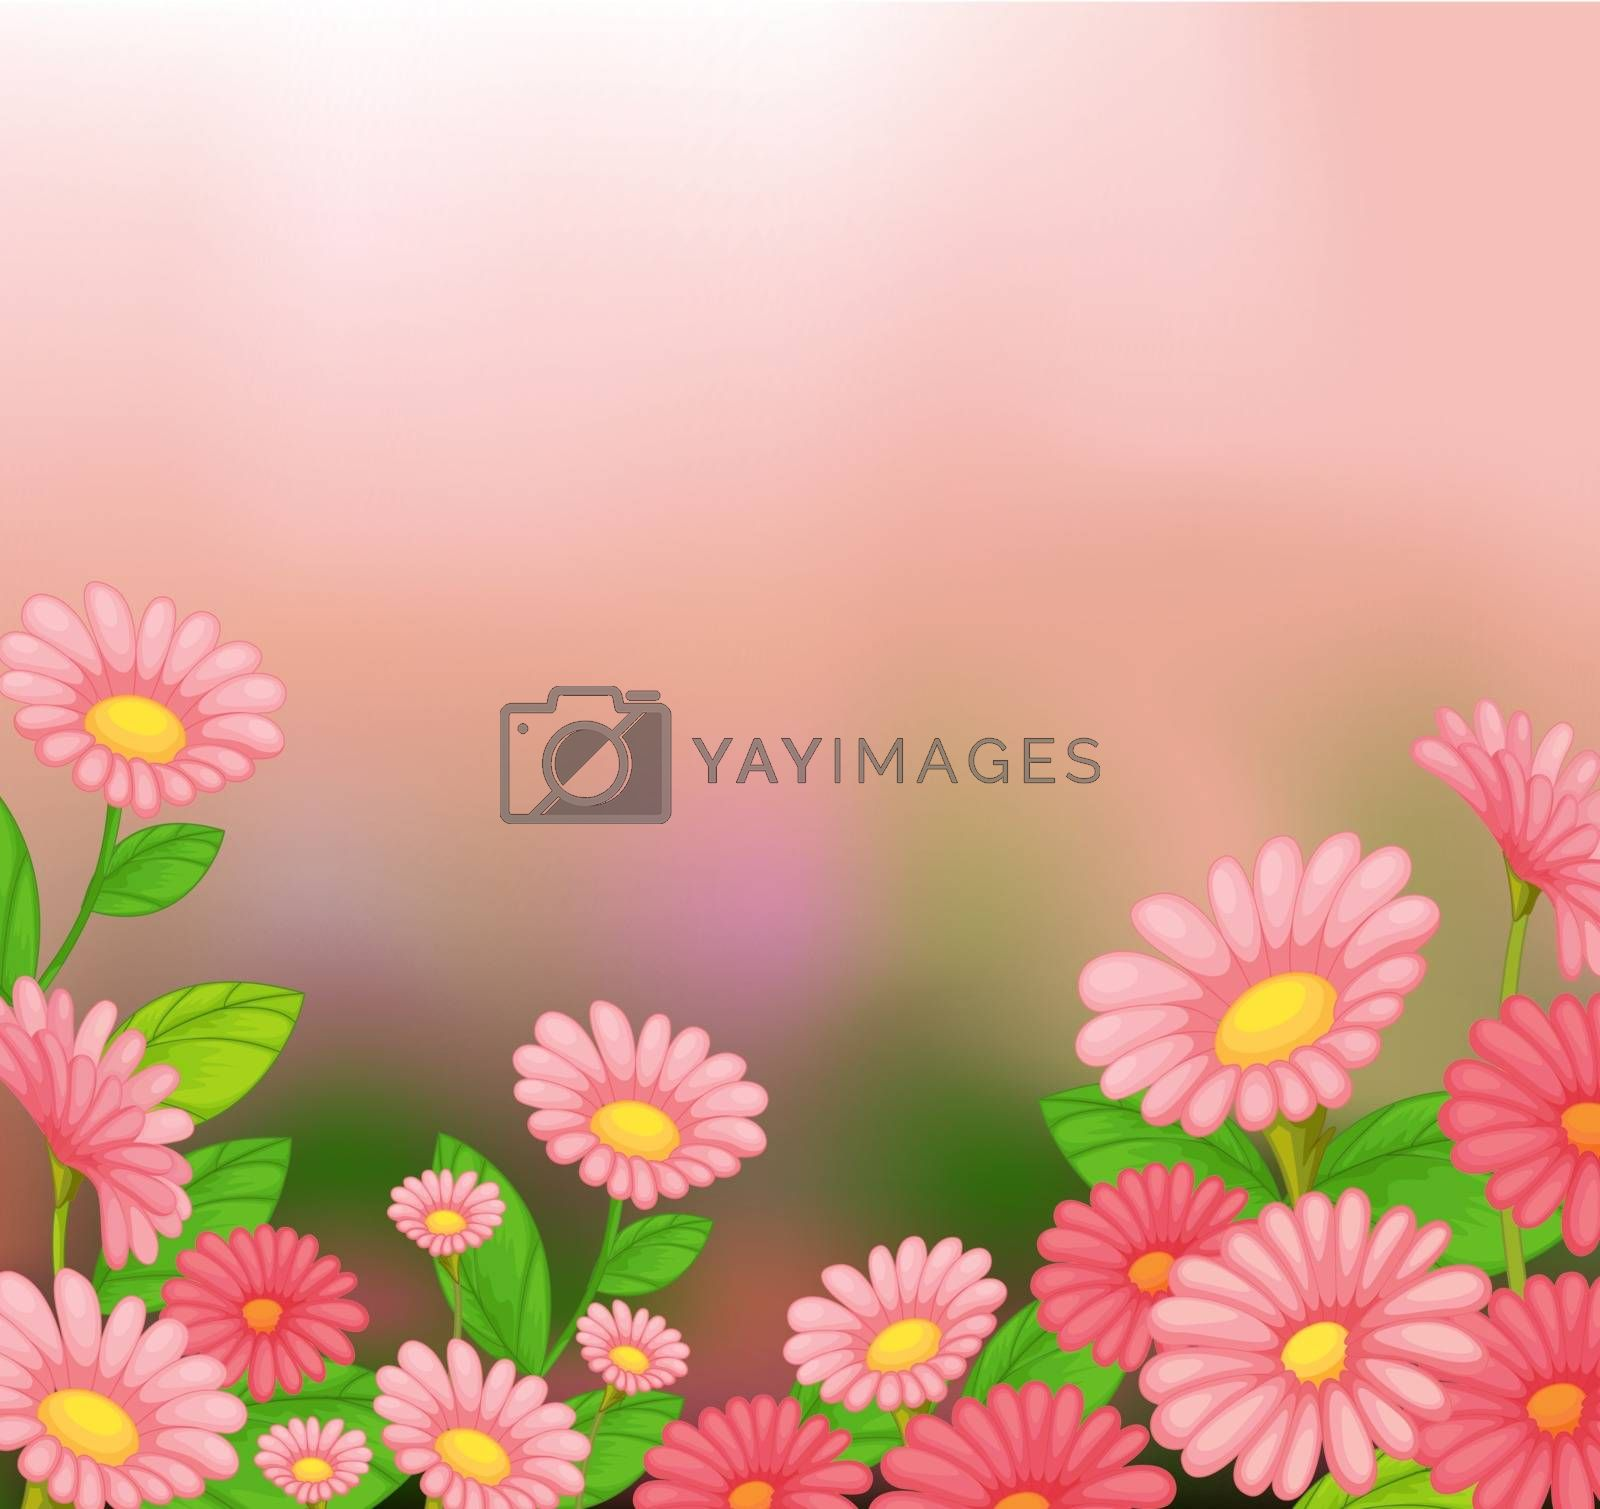 Illustration of the view of the beautiful pink flowers